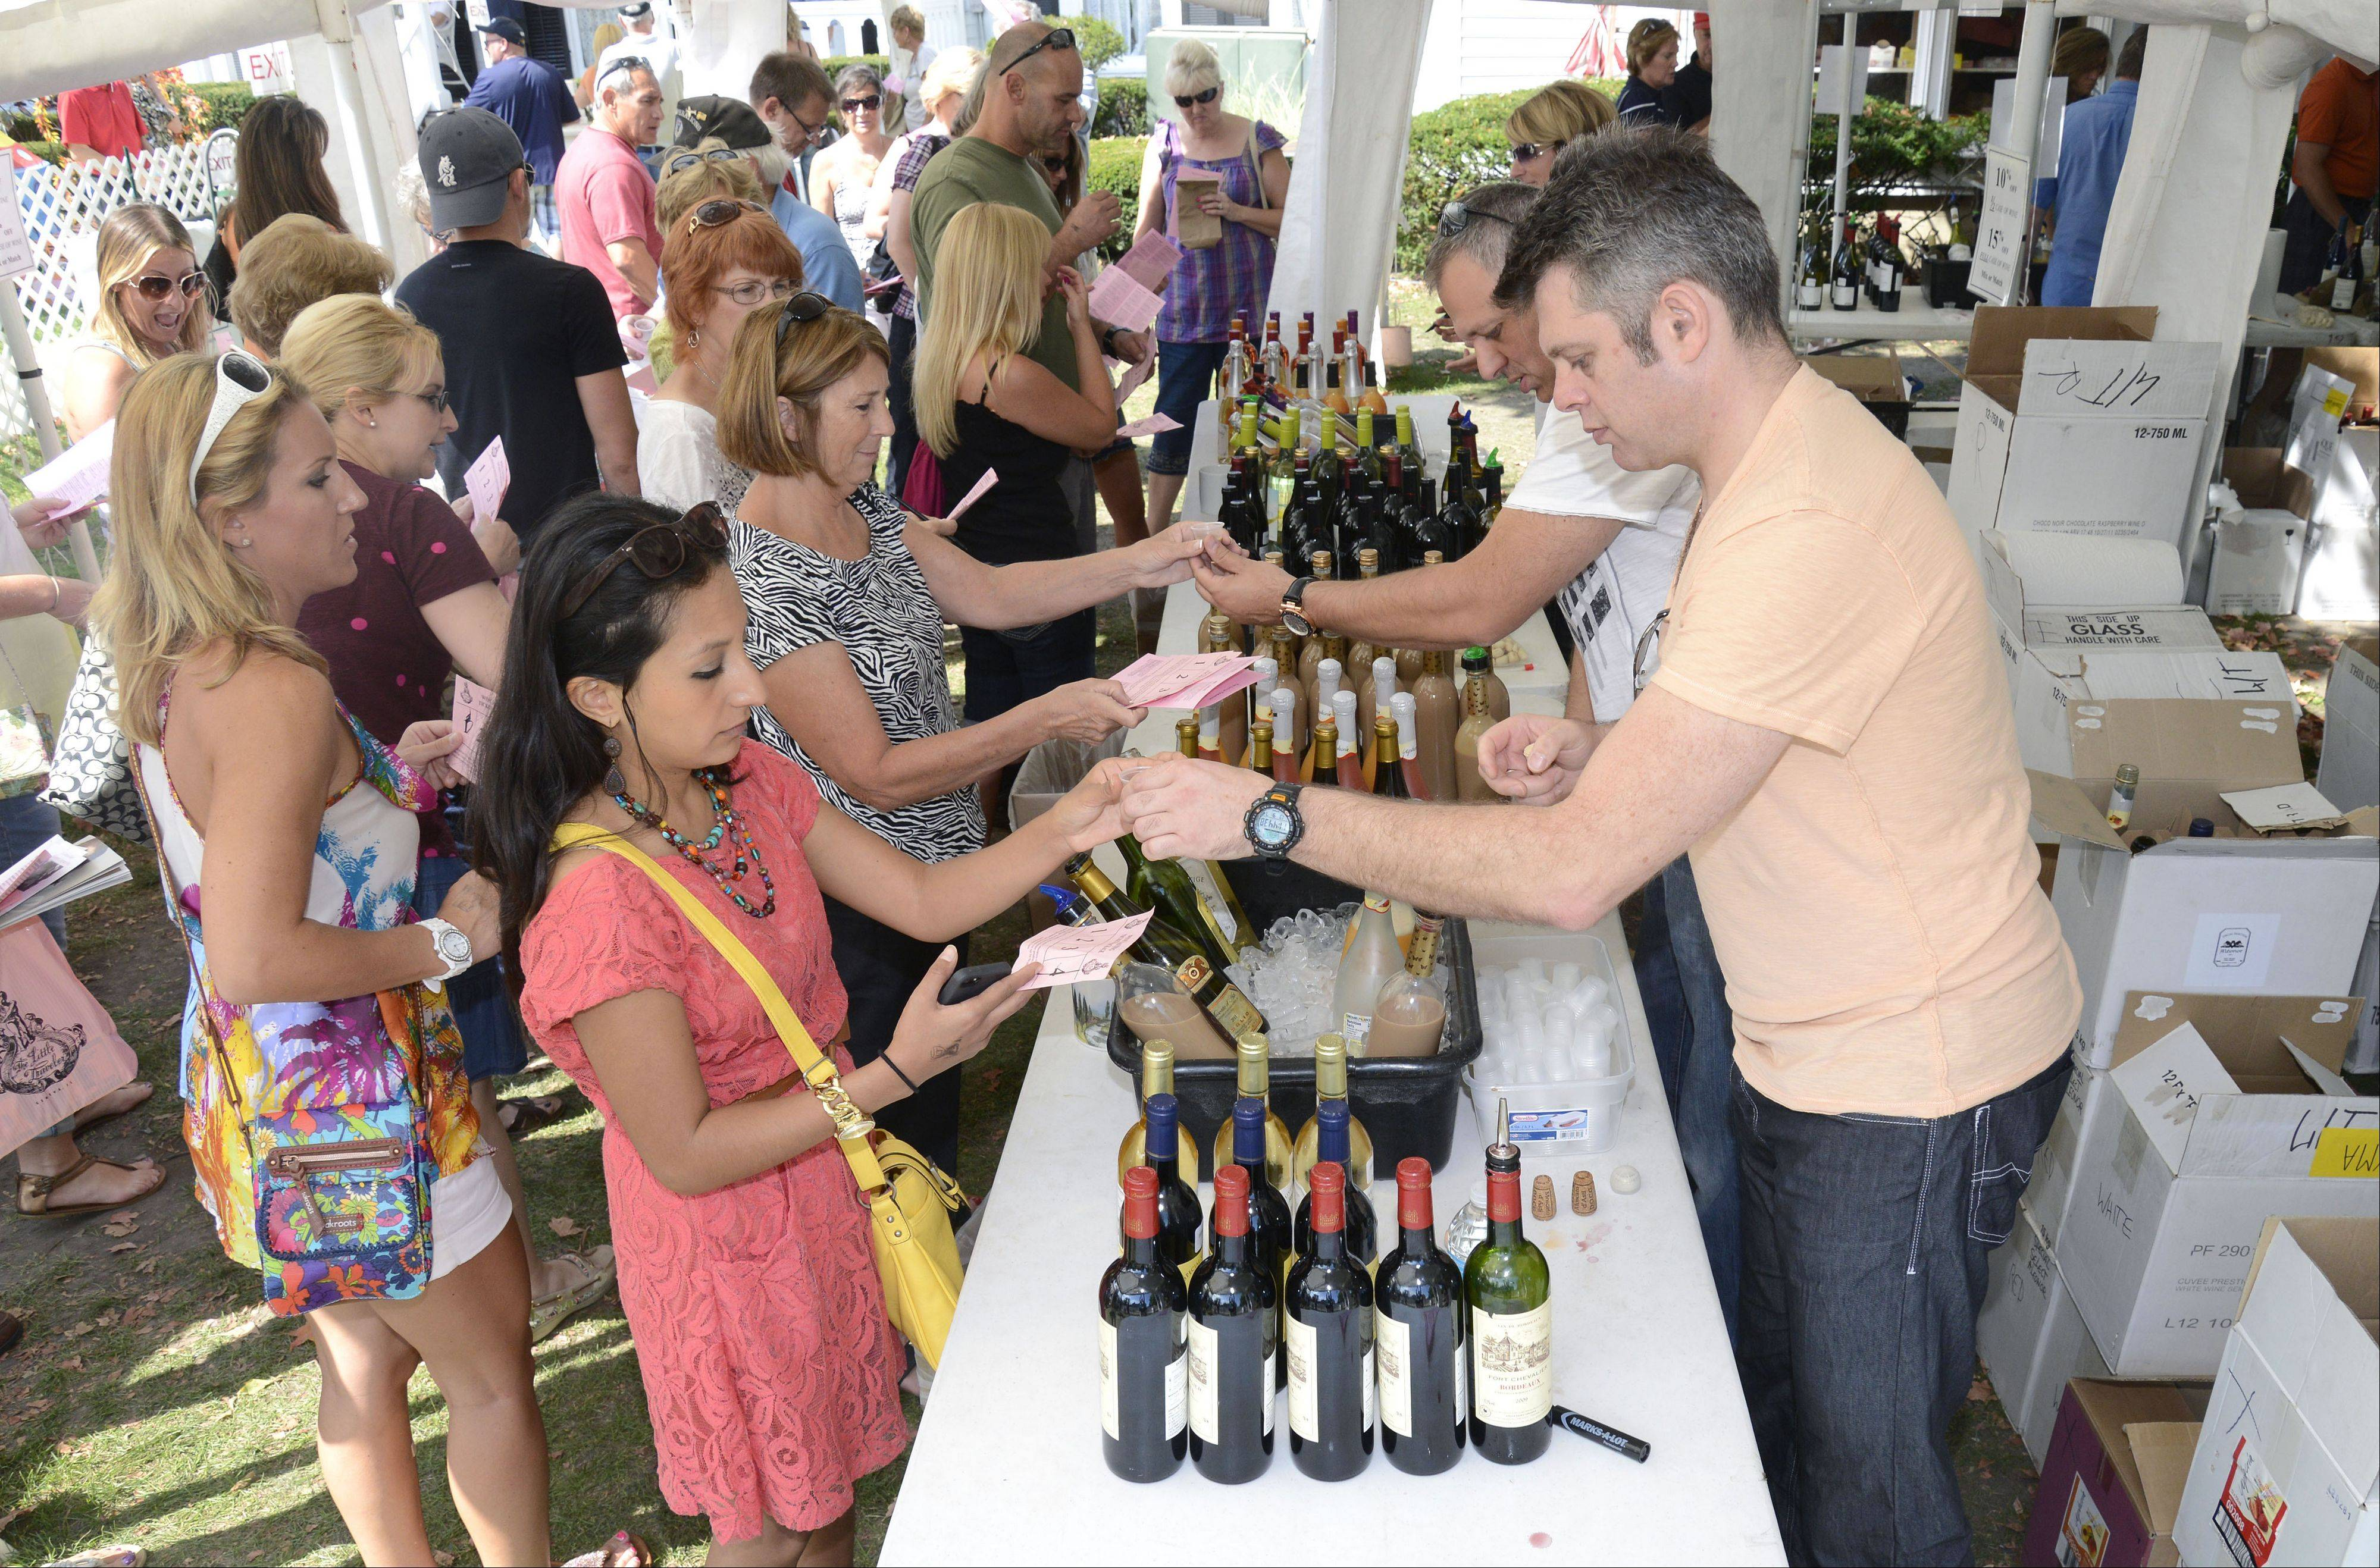 Liz Krahn of LaGrange is served a sample by Sergey Beylis with VMA Group Inc. wine and spirit distributors out of Elk Grove Village on Saturday at the Festival of the Vine in Geneva.